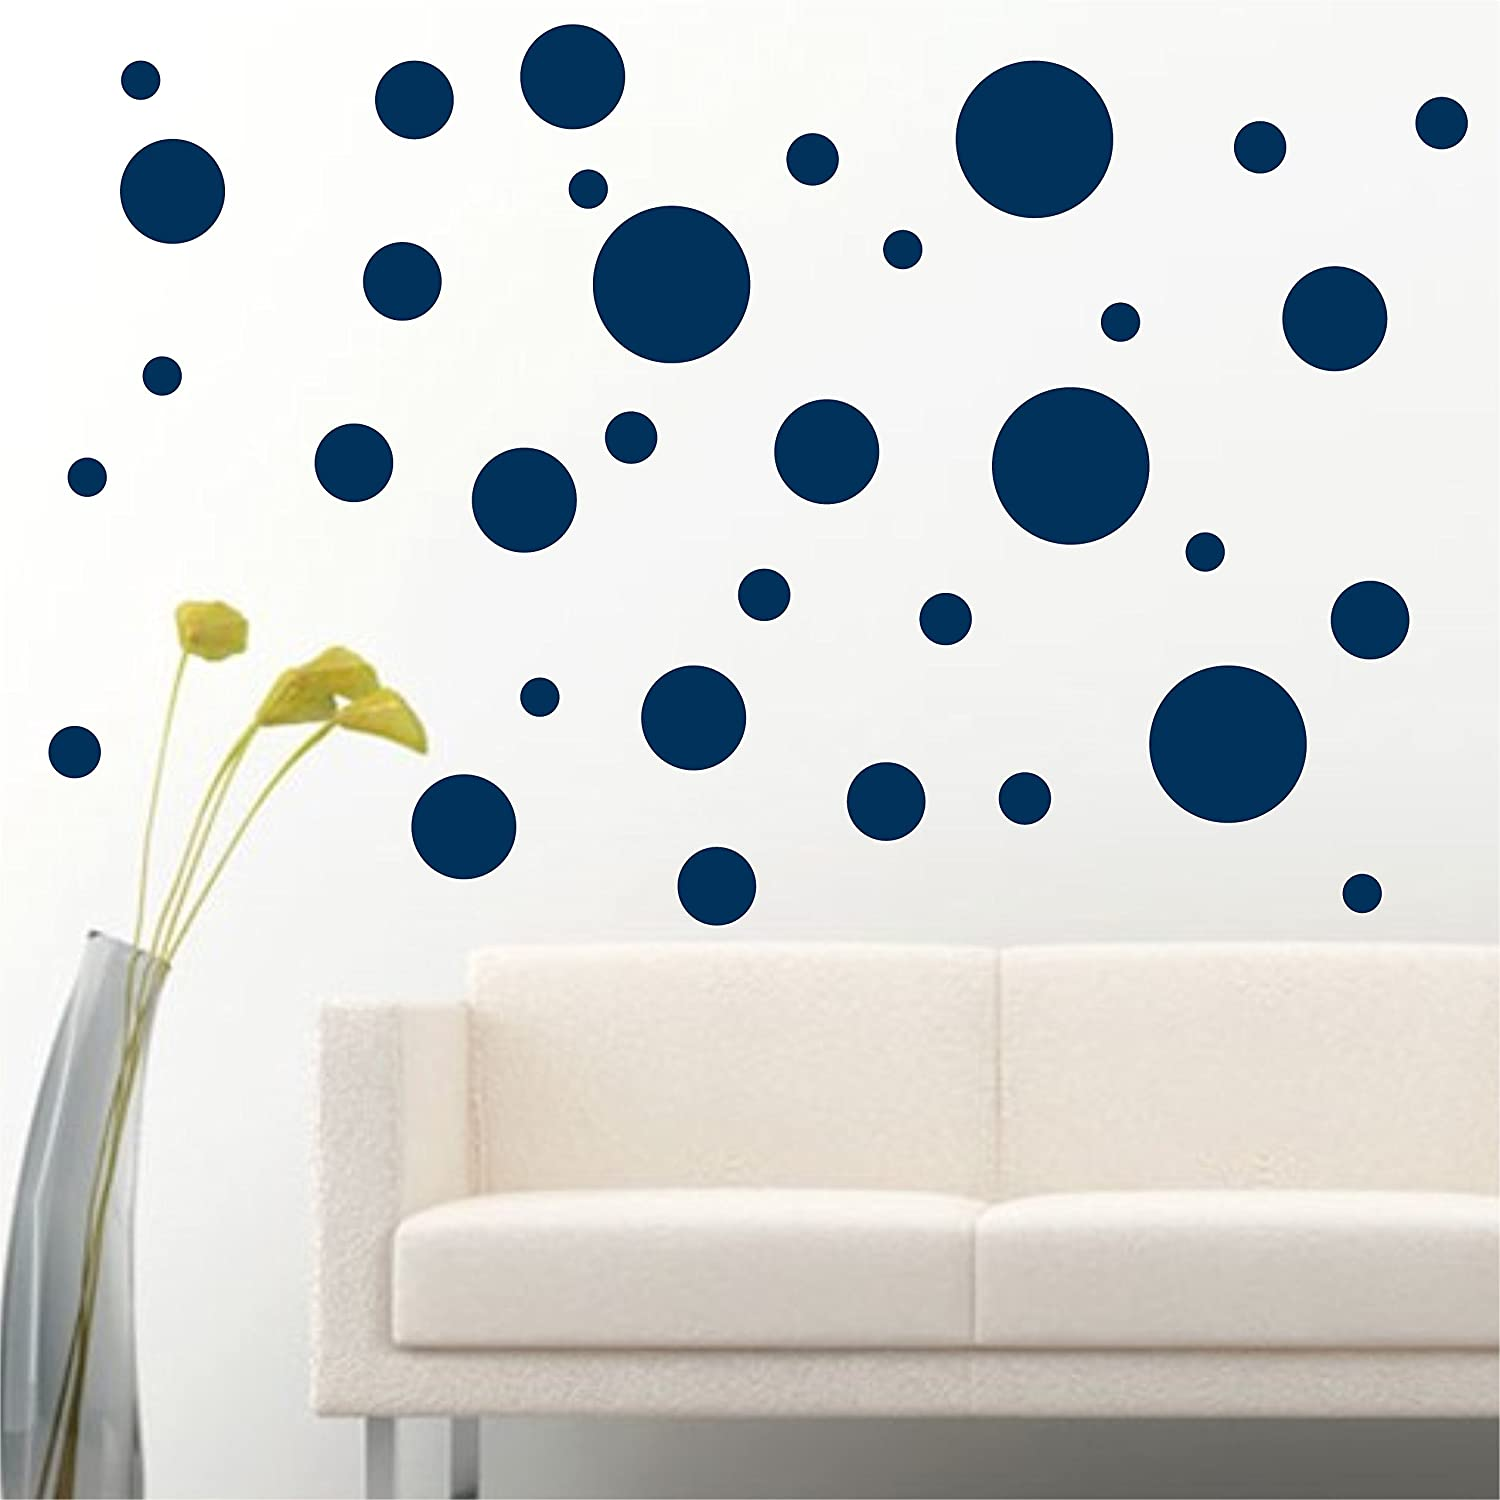 Amazon Com Jcm Custom Removable Easy Peel And Stick Wall Vinyl Decal Sticker Diy Decor Safe On Painted Polka Dots Circle Navy Blue 56 Pack Of 5 Size Arts Crafts Sewing